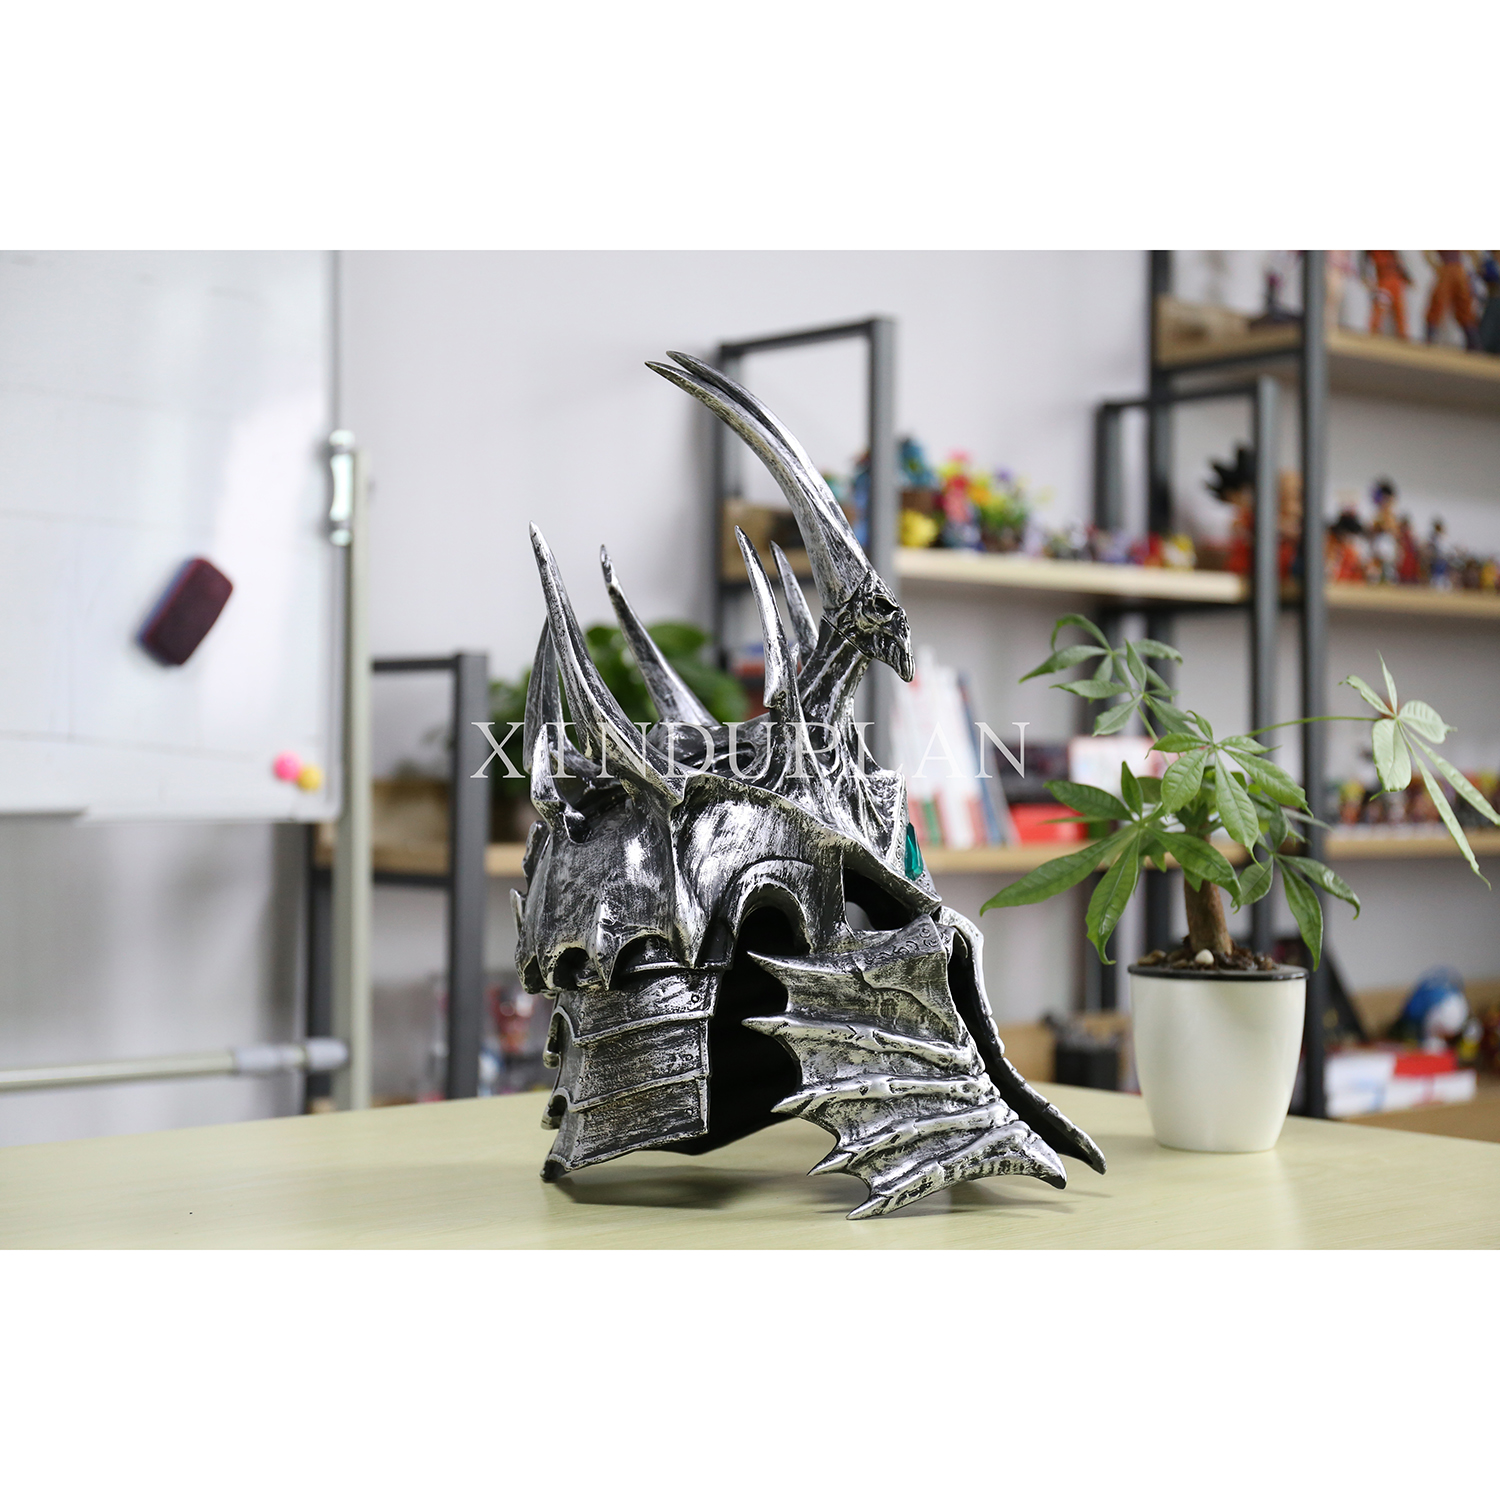 XINDUPLAN NEW Dota 2 Arthas Menethil Lich King Anime Cosplay 1/1 Action Figure Toys Juguete 46cm Kids Collection Model 0387 world of wow arthas menethil lich king deluxe action figure statue nib